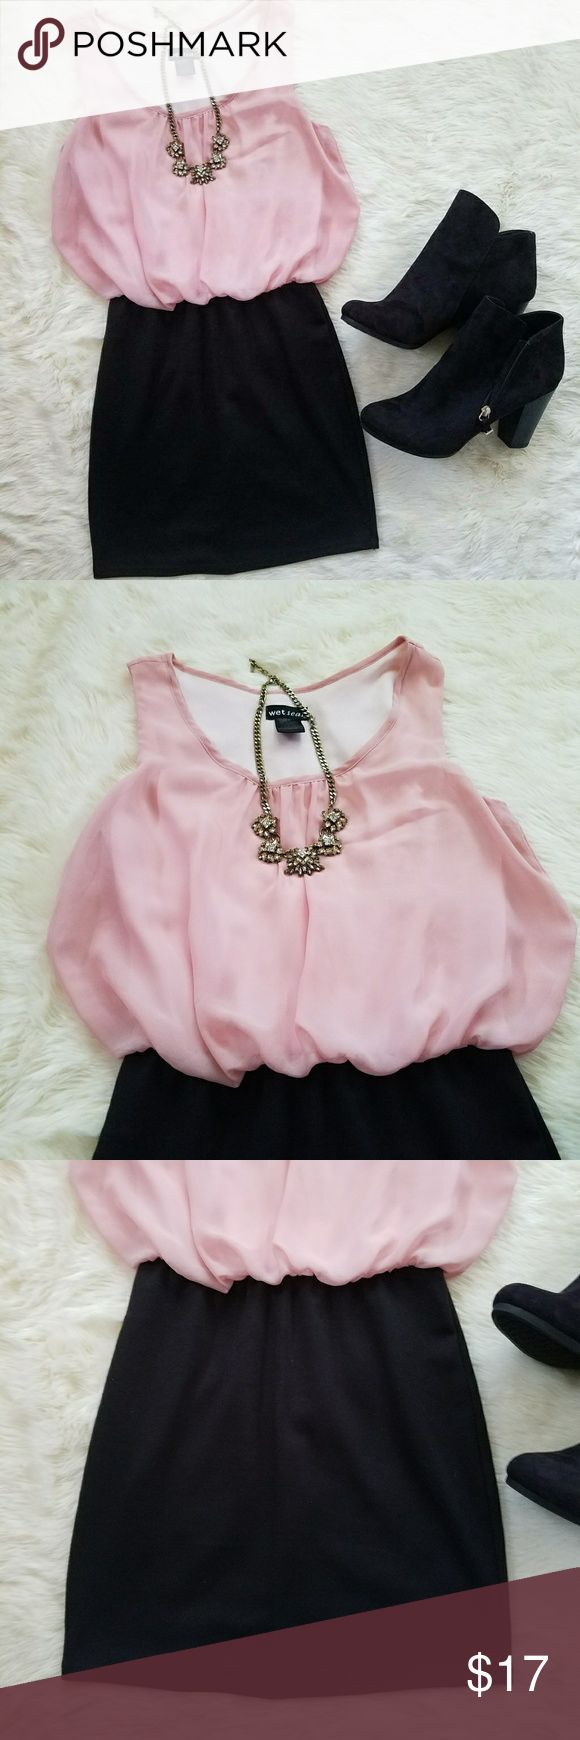 Pink and Black Dress Top very beautiful light pink. Flowy kind sheet material but light pink underlay so not see through! Top is tight black. Skirt is about 14.5 inches long. Whole dress is (measured shoulder to bottom of skirt) Is about 30 inches long. Very cute dress, works for so many different occasions. Only wore once! Wet Seal Dresses Mini